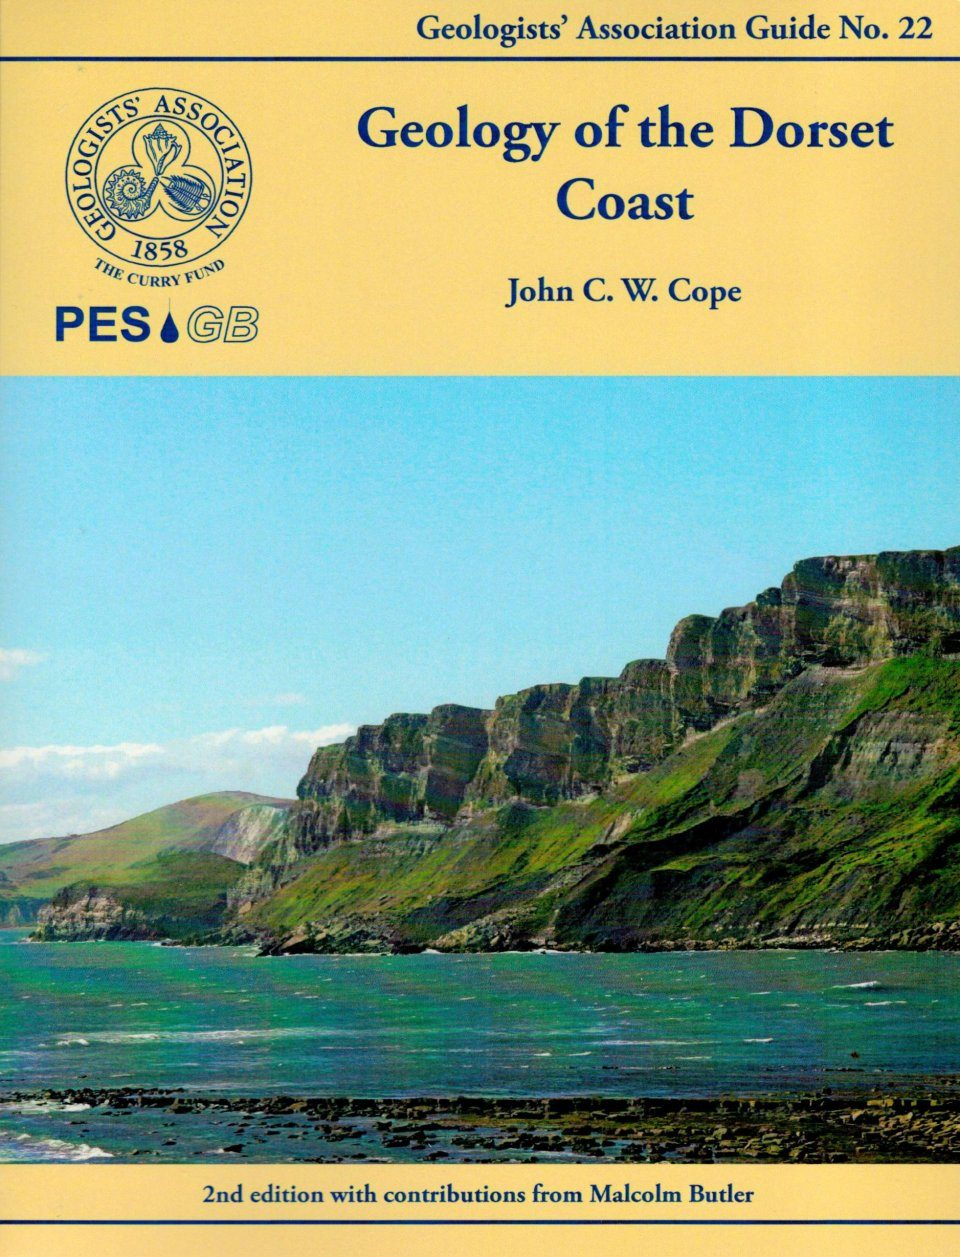 Geology of the Dorset Coast